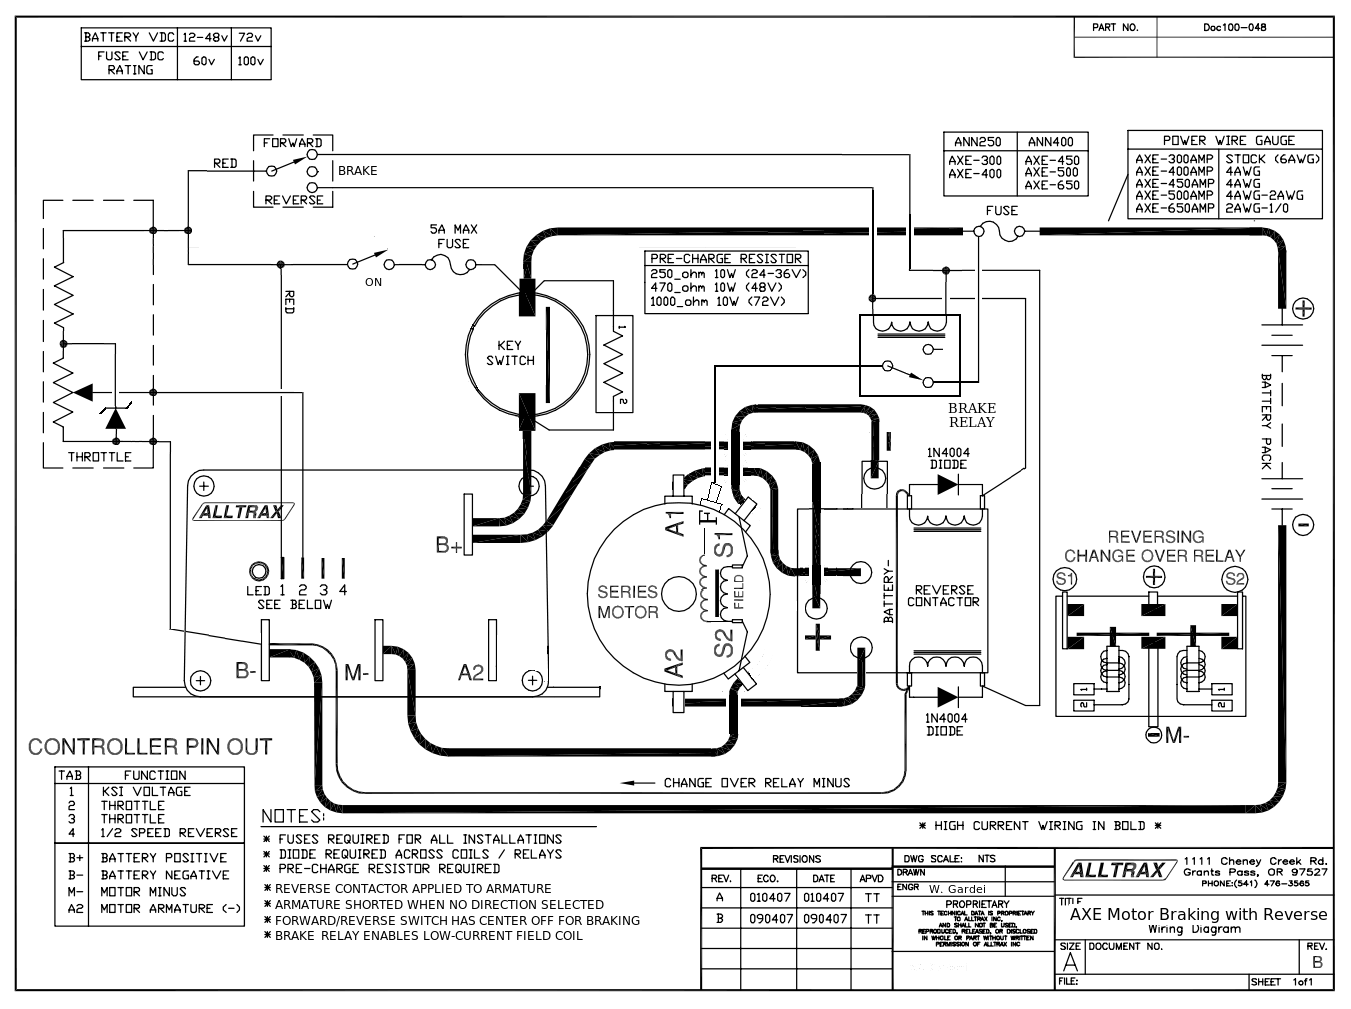 Alltrax Axe Wiring Diagram Oil Pump 4.2 Liter Ford Engine